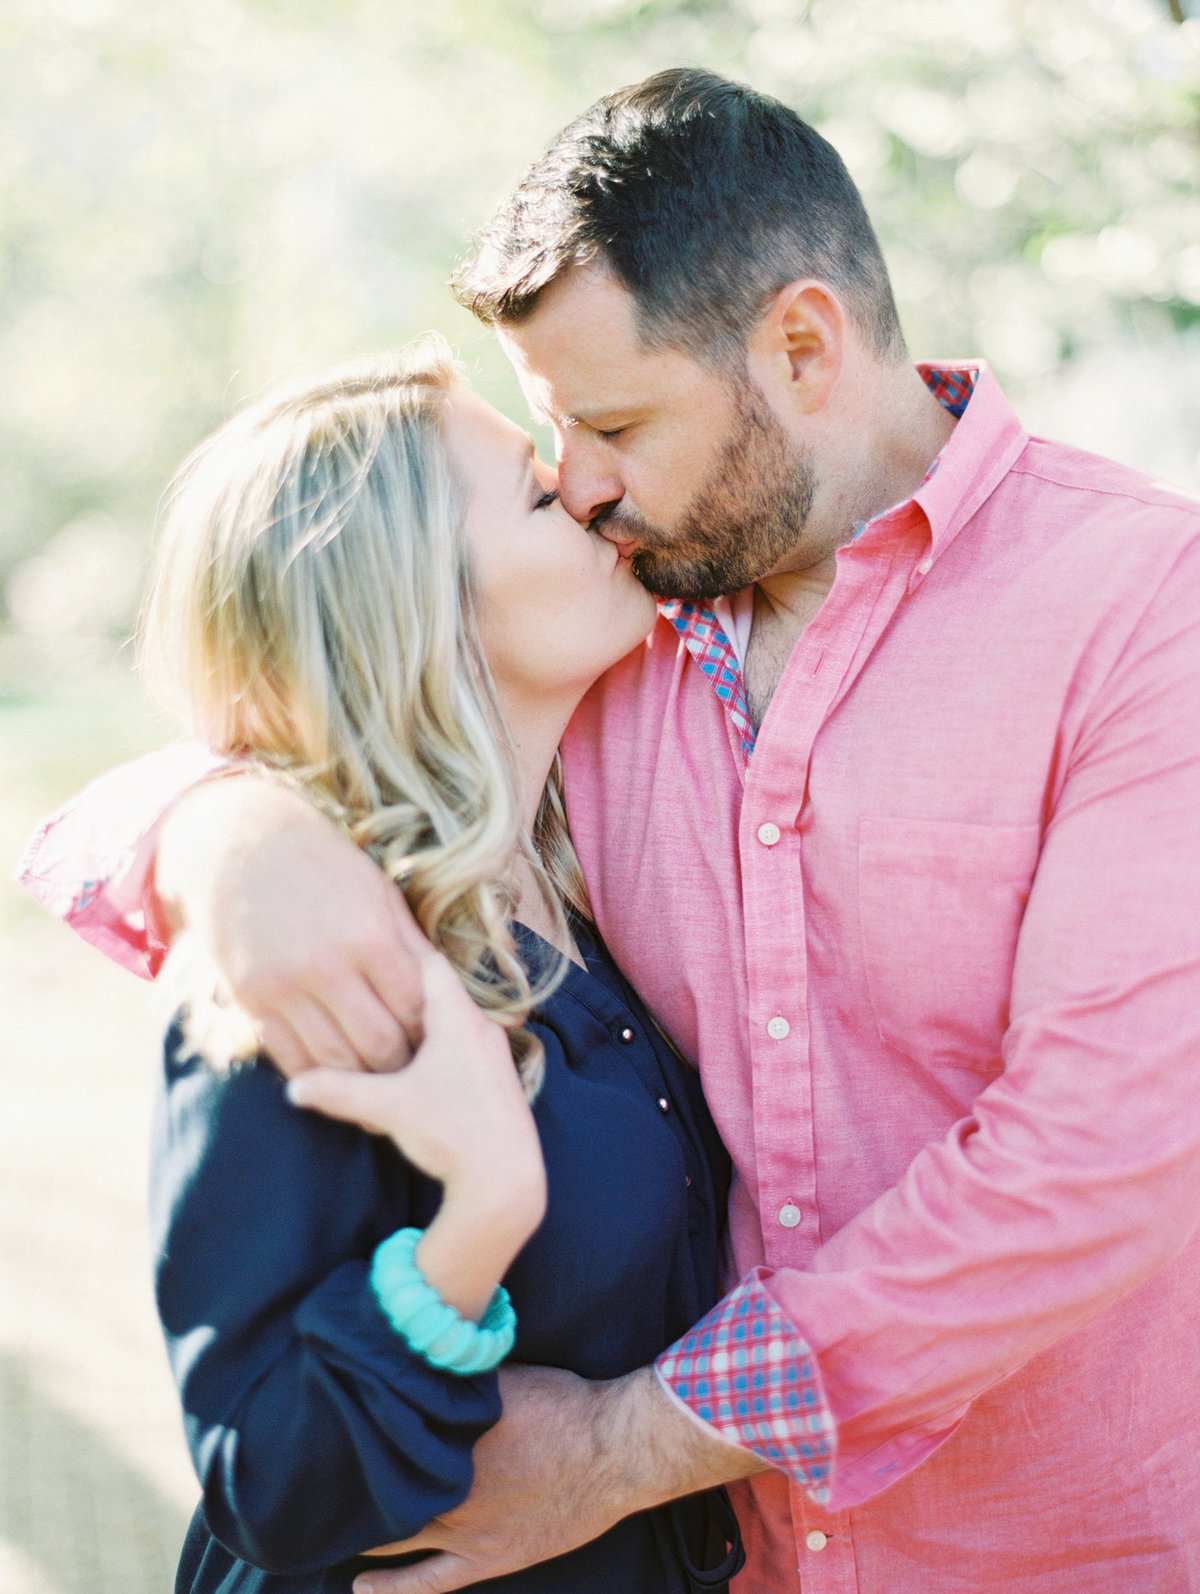 Courtney Hanson Photography - Dallas Spring Engagement Photos-012